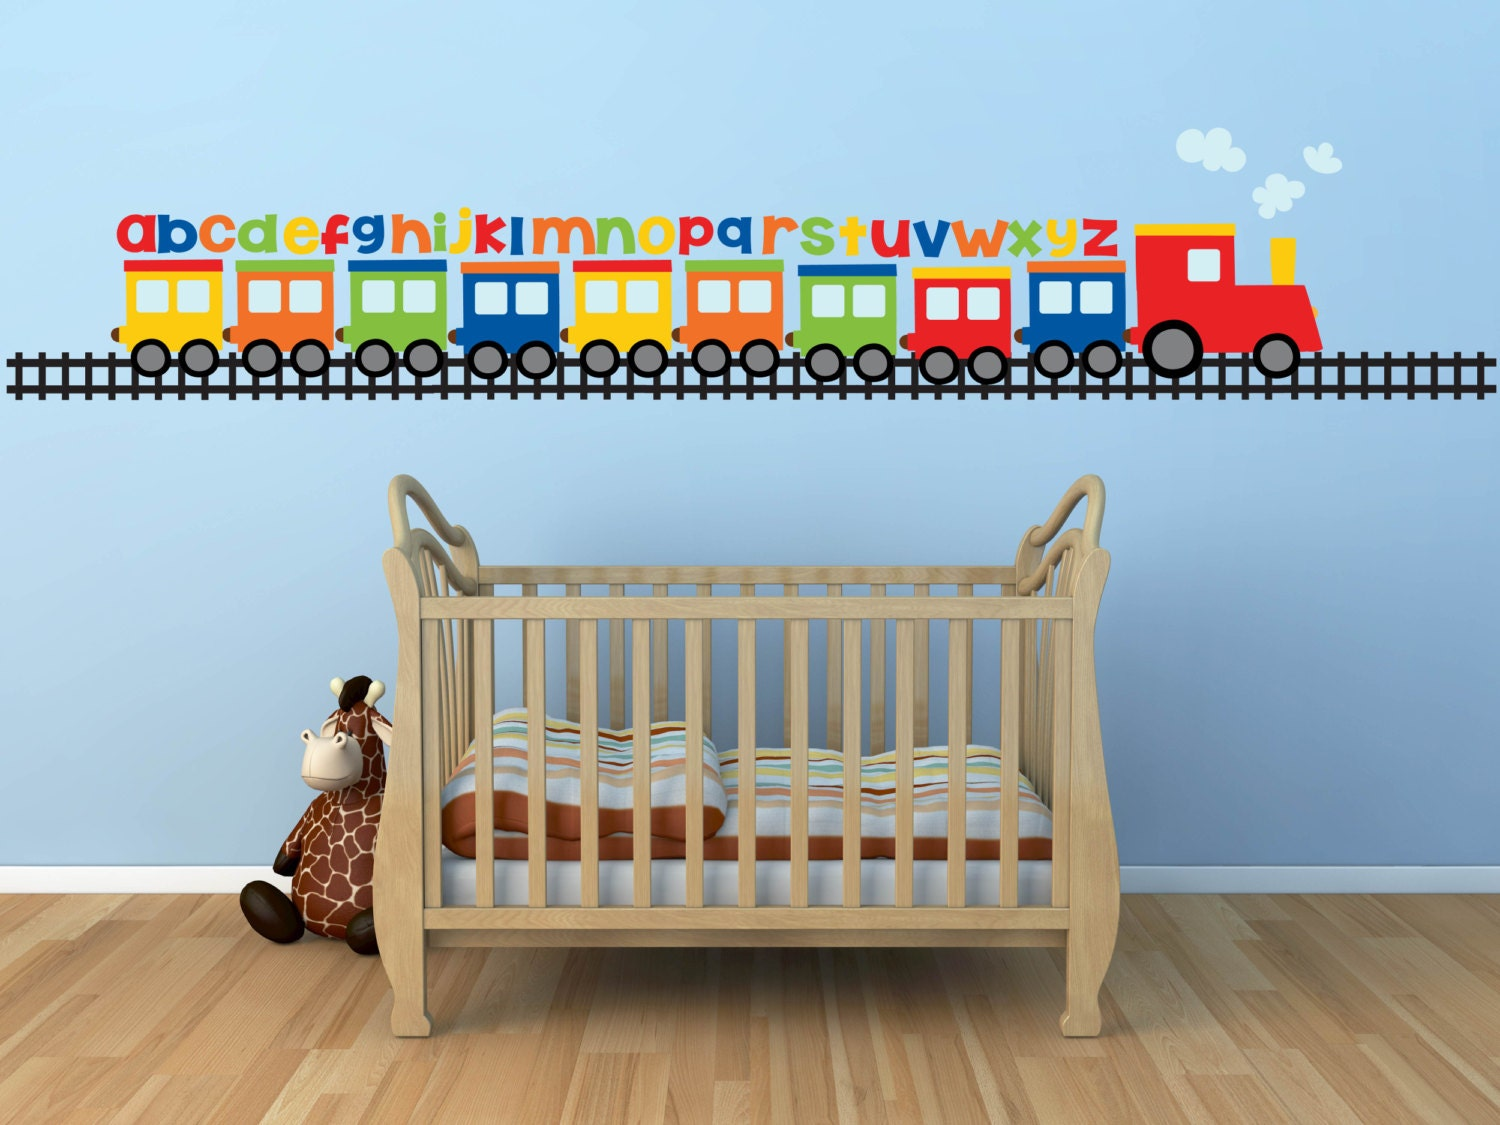 Train wall decal alphabet decal abc wall decal zoom amipublicfo Images